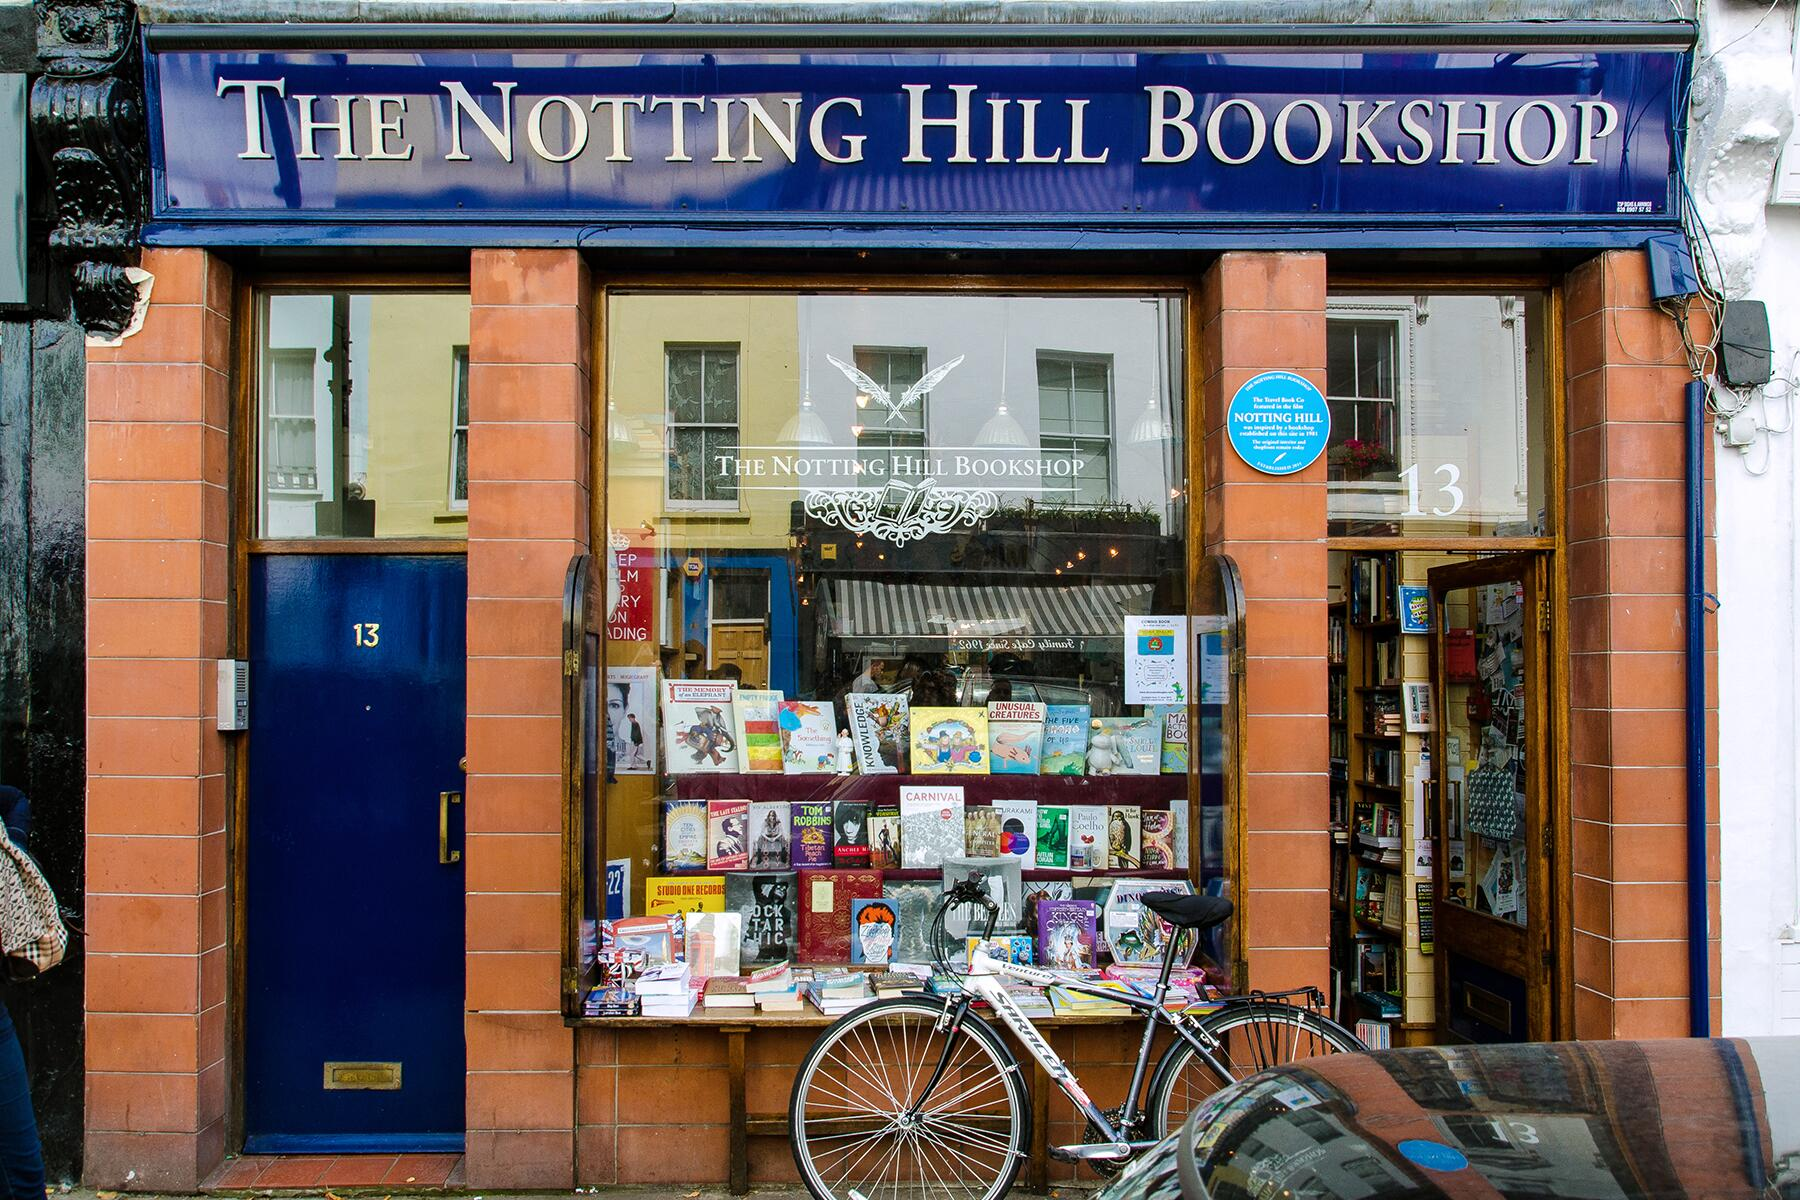 Notting Hill bookshop delivery